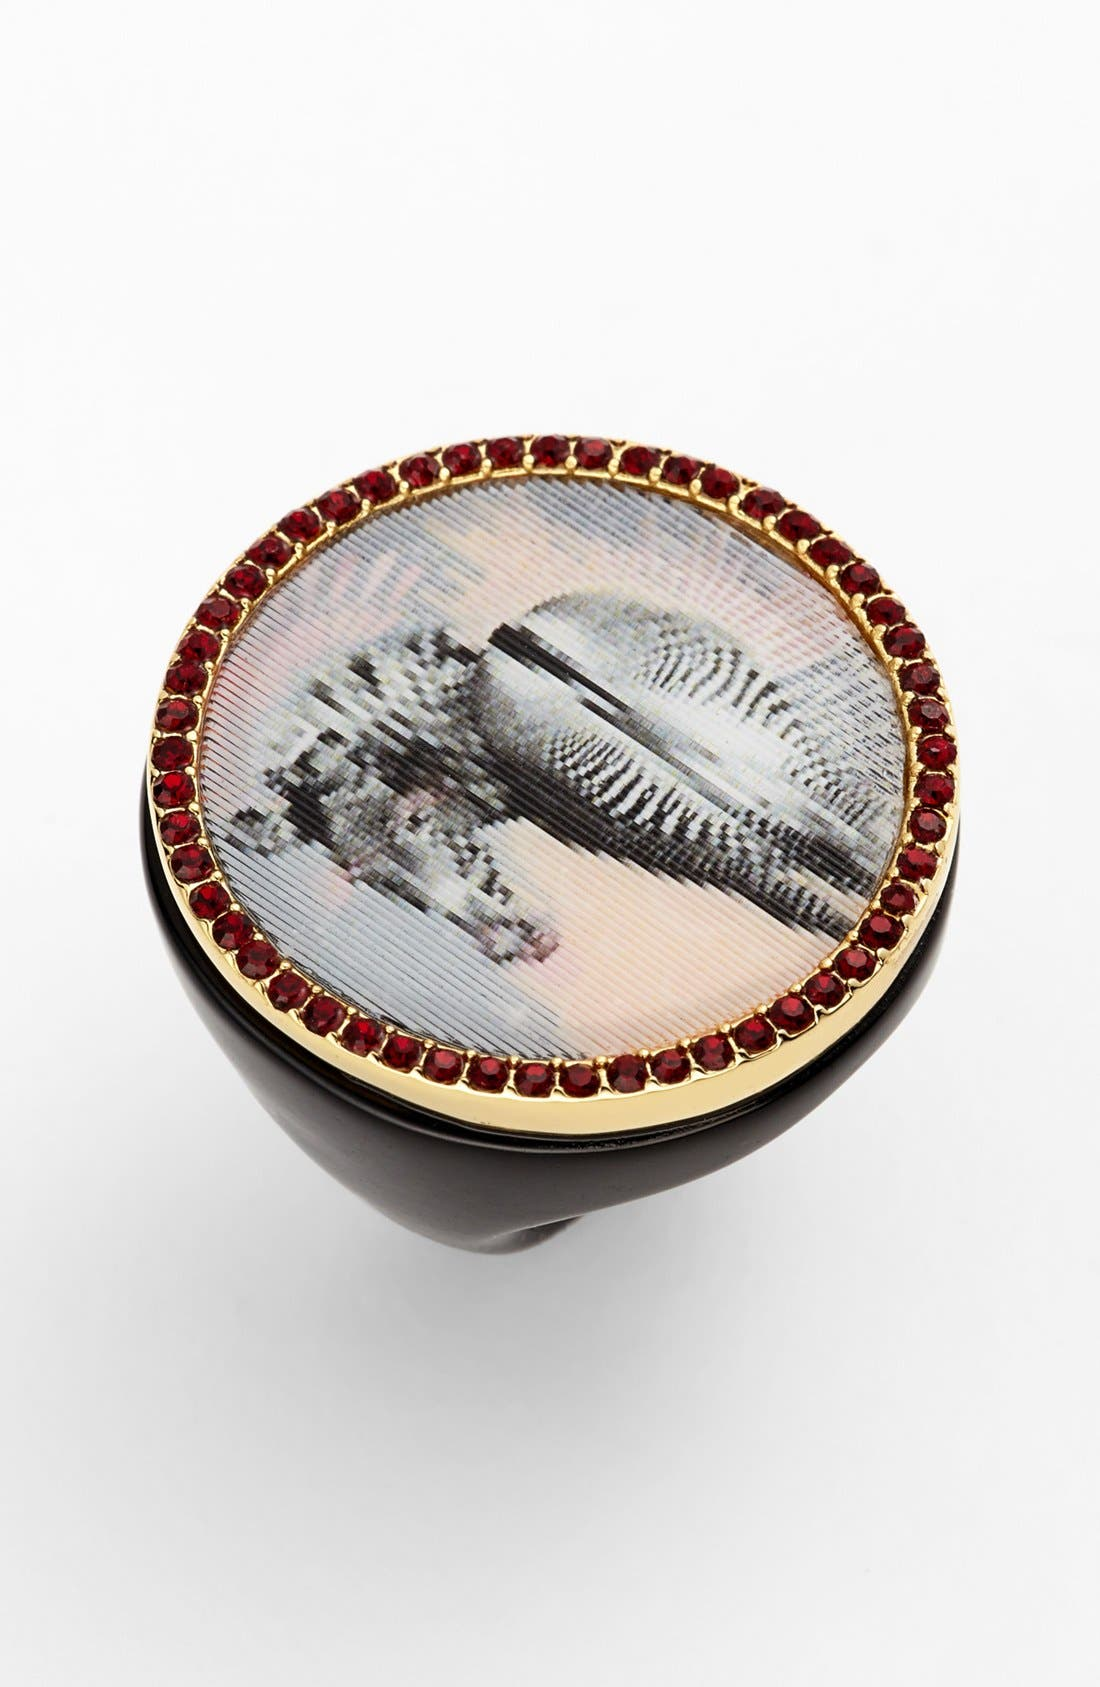 Main Image - MARC BY MARC JACOBS 'Lenticular - Zebra' Statement Ring